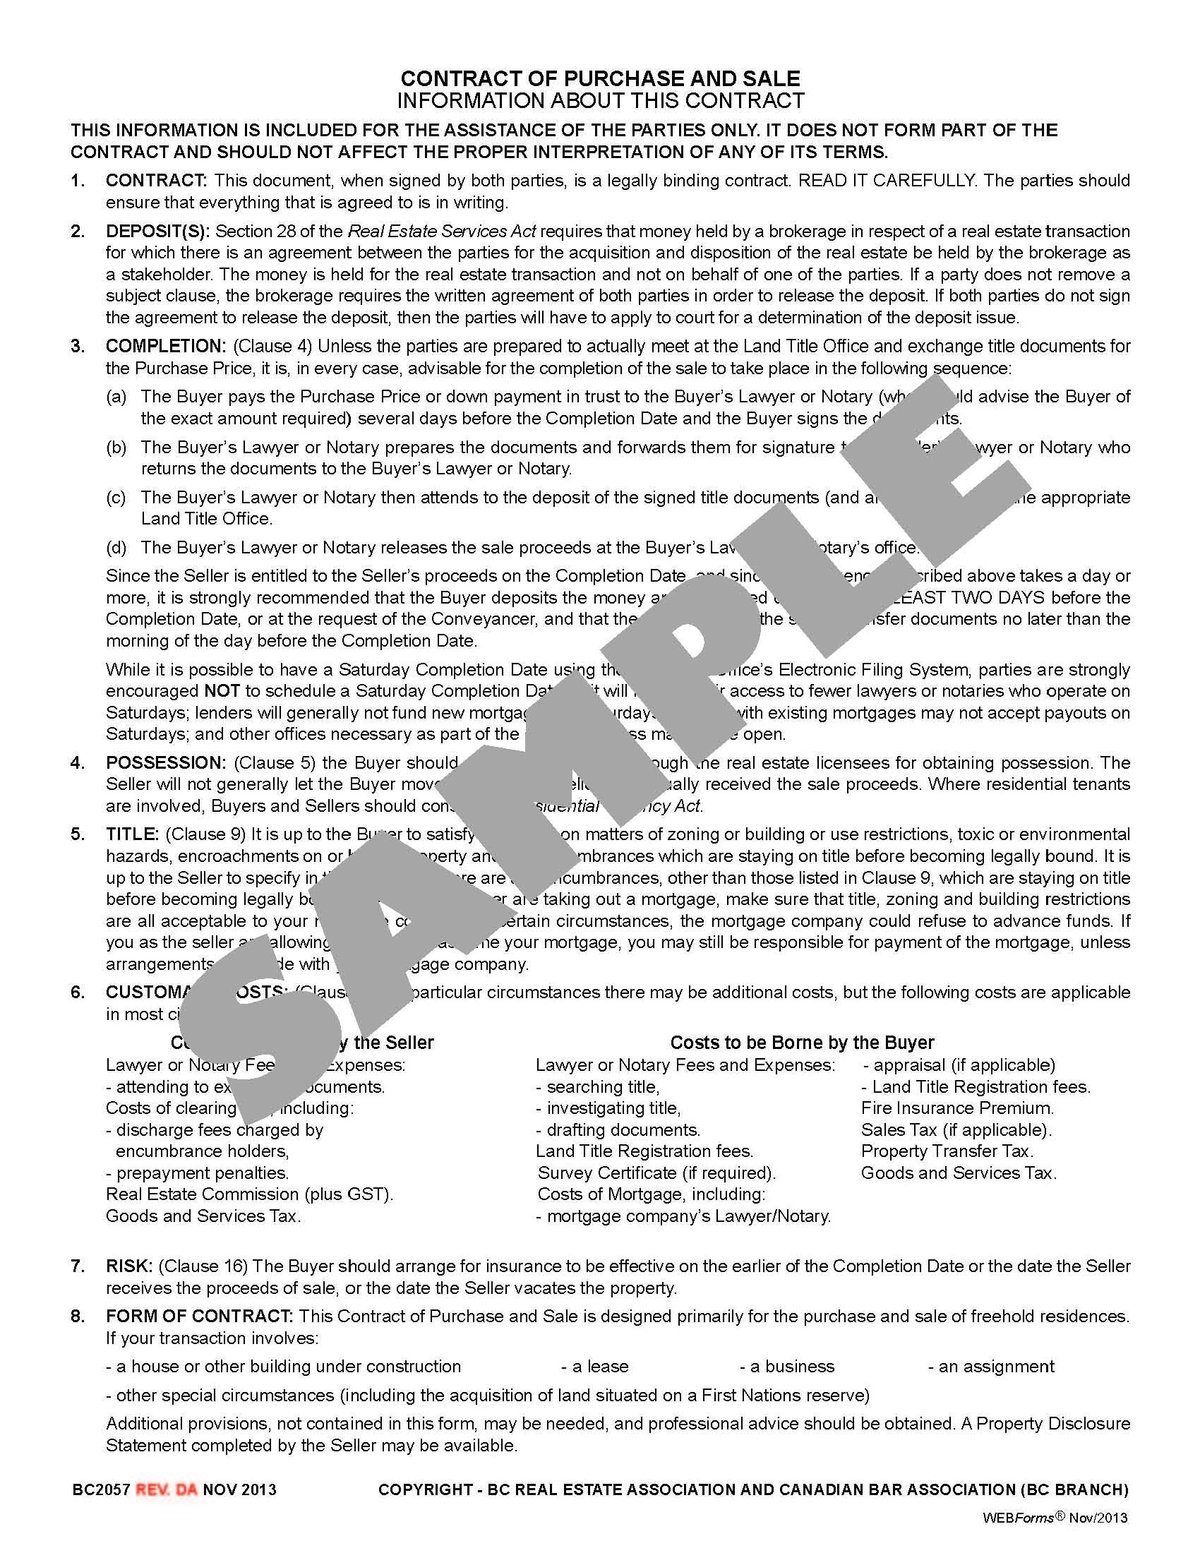 MLS-contract_of_purchase_and_sale SAMPLE_Page_1.jpg